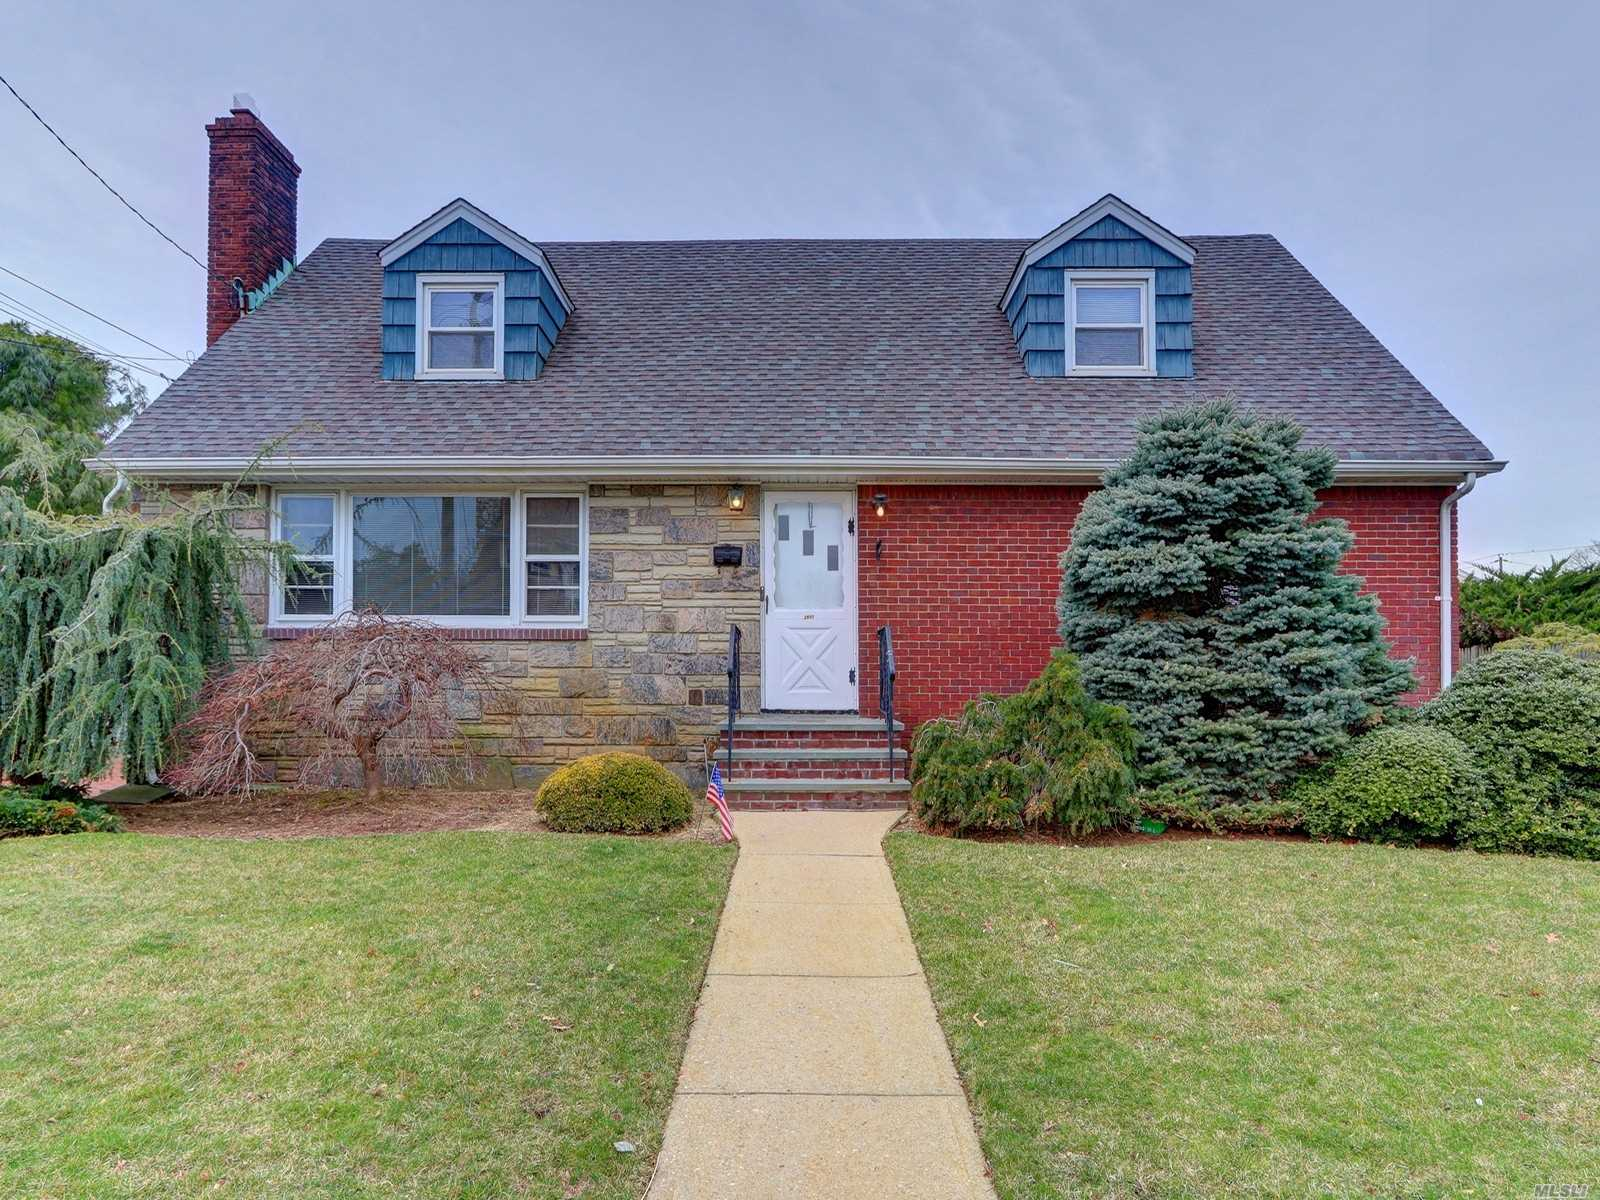 Expanded Cape Style Home. This Home Features 5 Bedrooms, 2.5 Full Baths, Dining Room, Kitchen & 2.5 Car Garage. Centrally Located To All. Don't Miss This Opportunity!